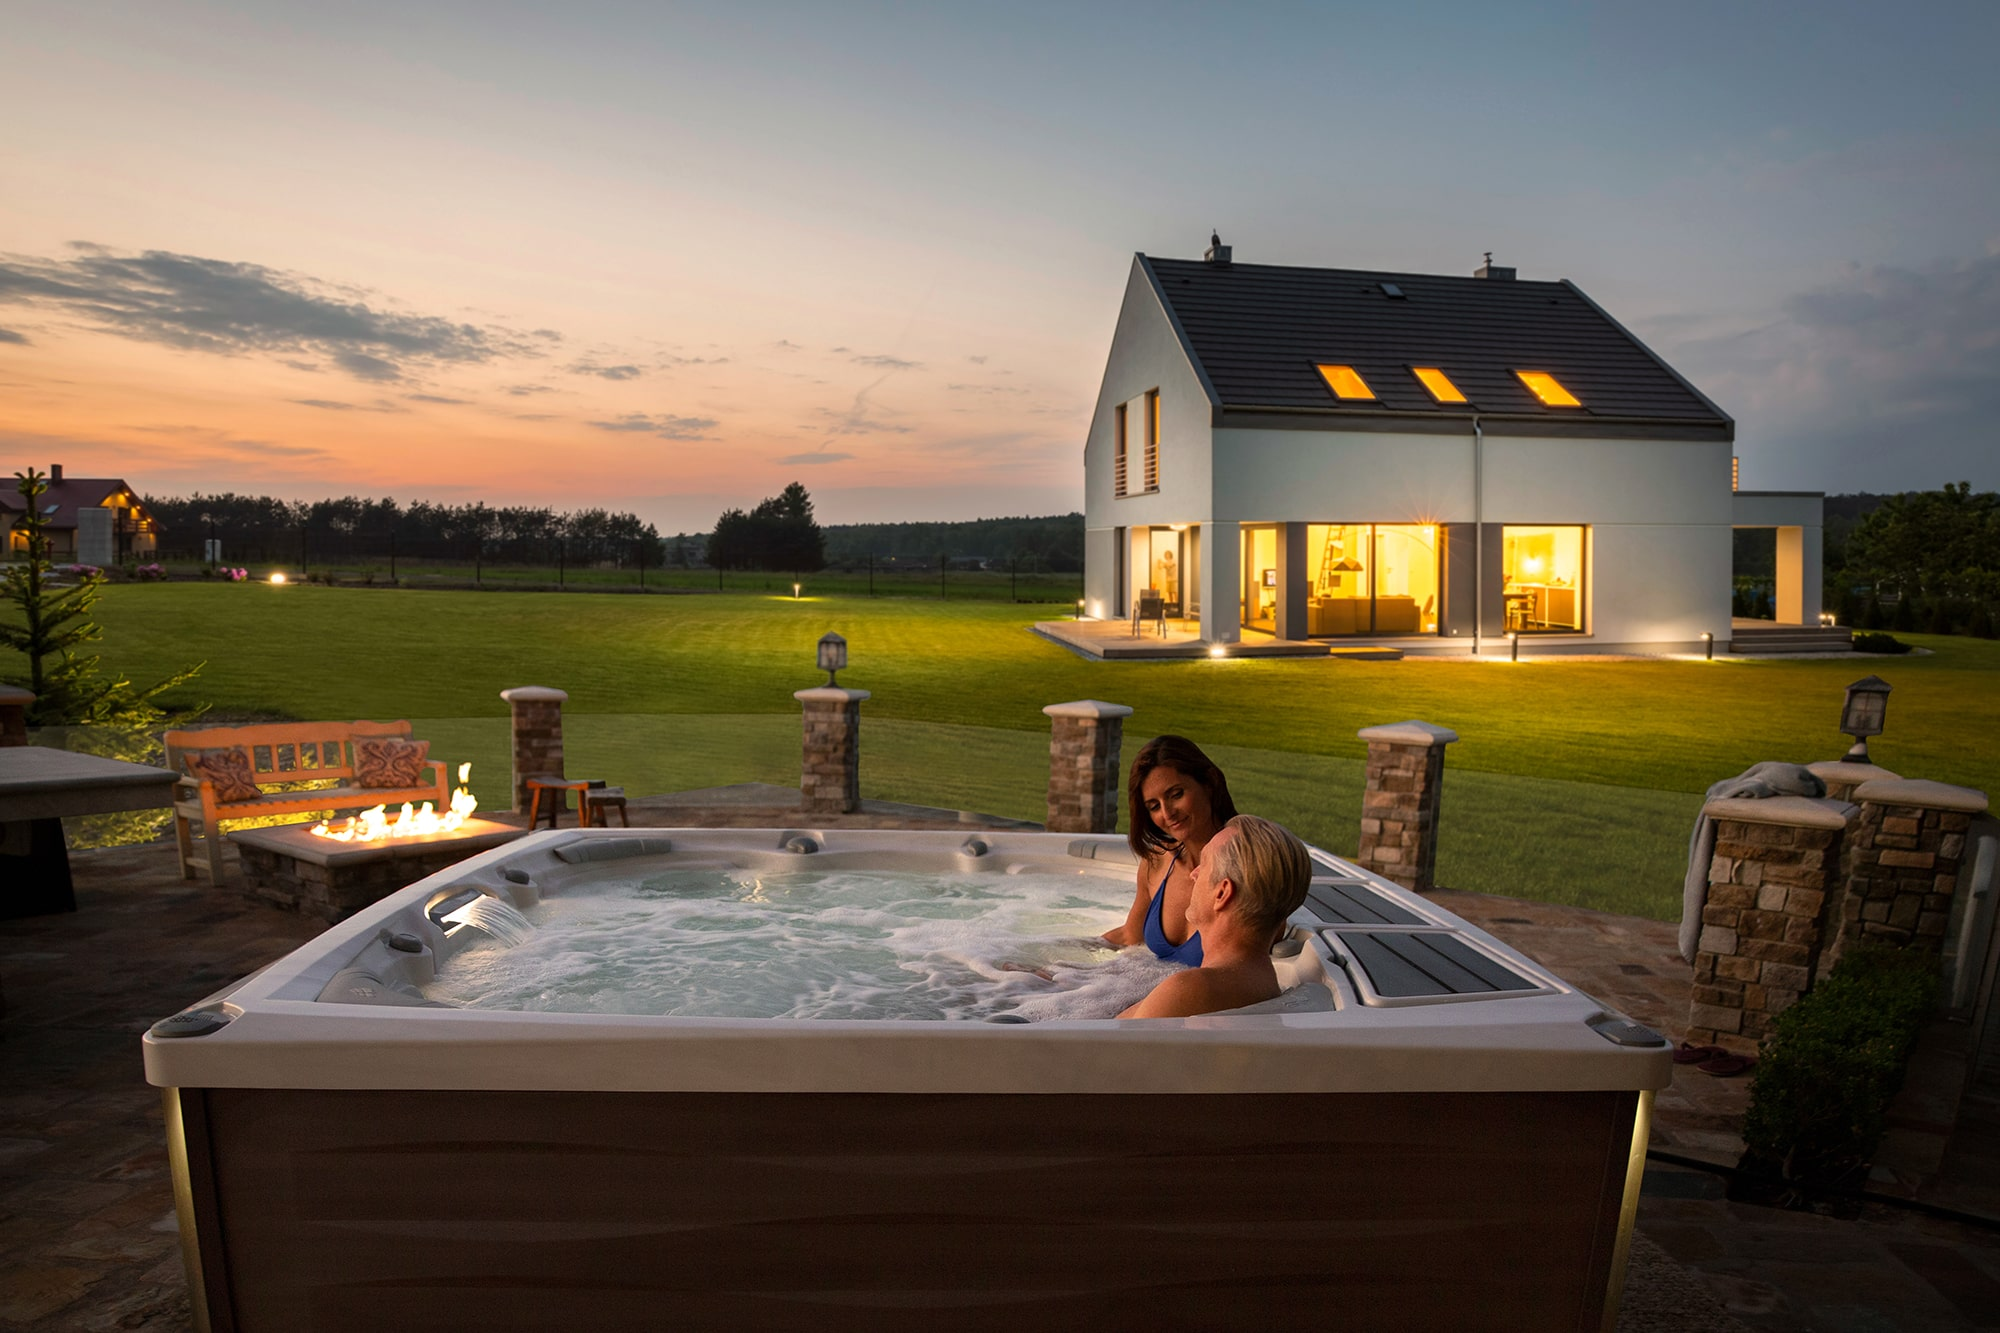 Sundance Spas hot tub couple sunset in Redding, CA